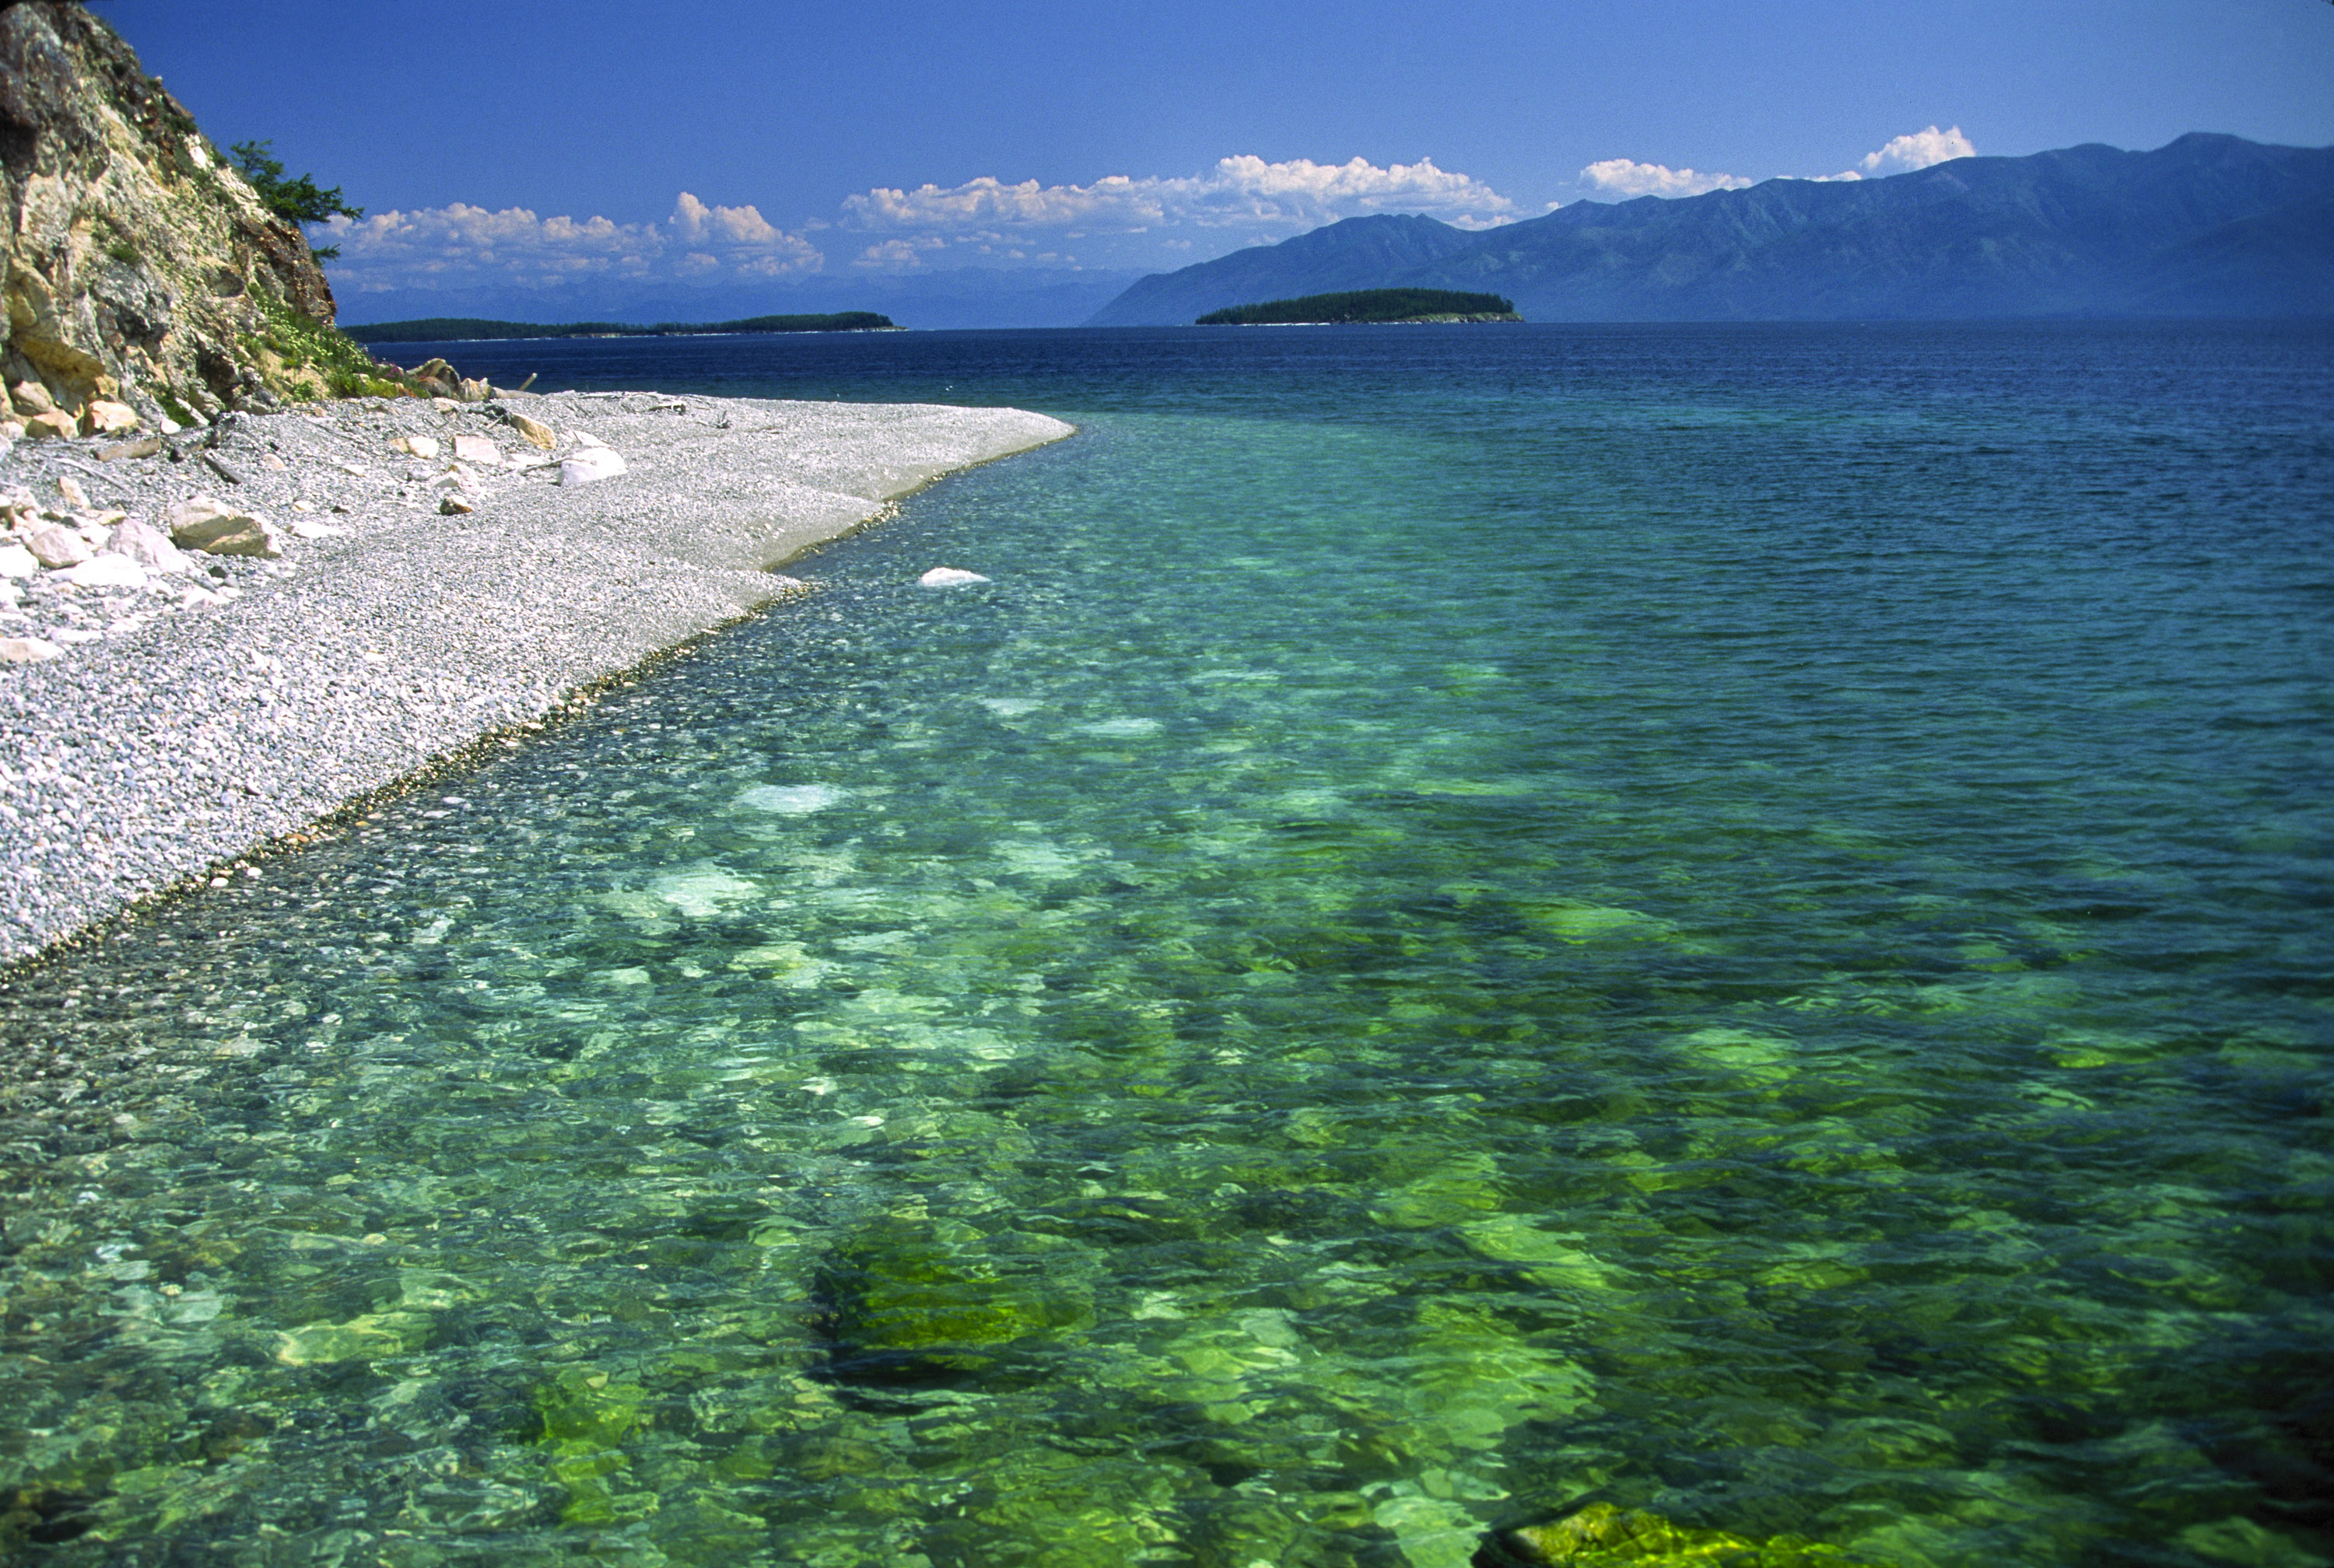 The largest lake in Russia - the Caspian Sea 95